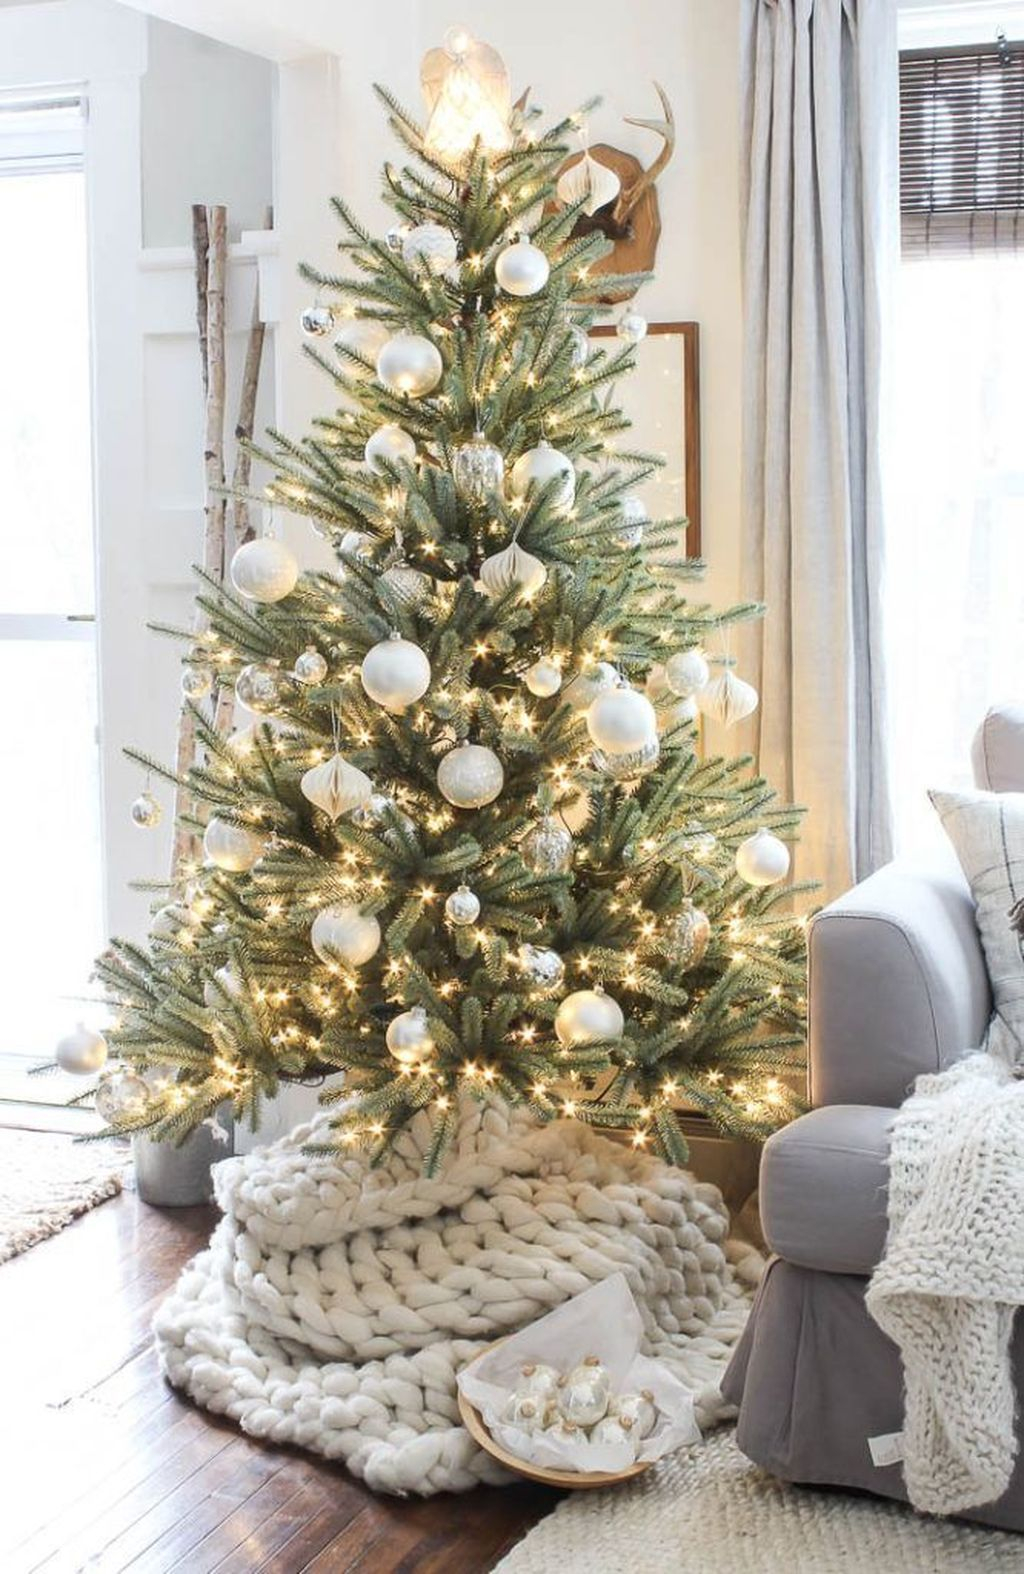 Rustic Winter Decor Ideas For Home To Try Asap 13